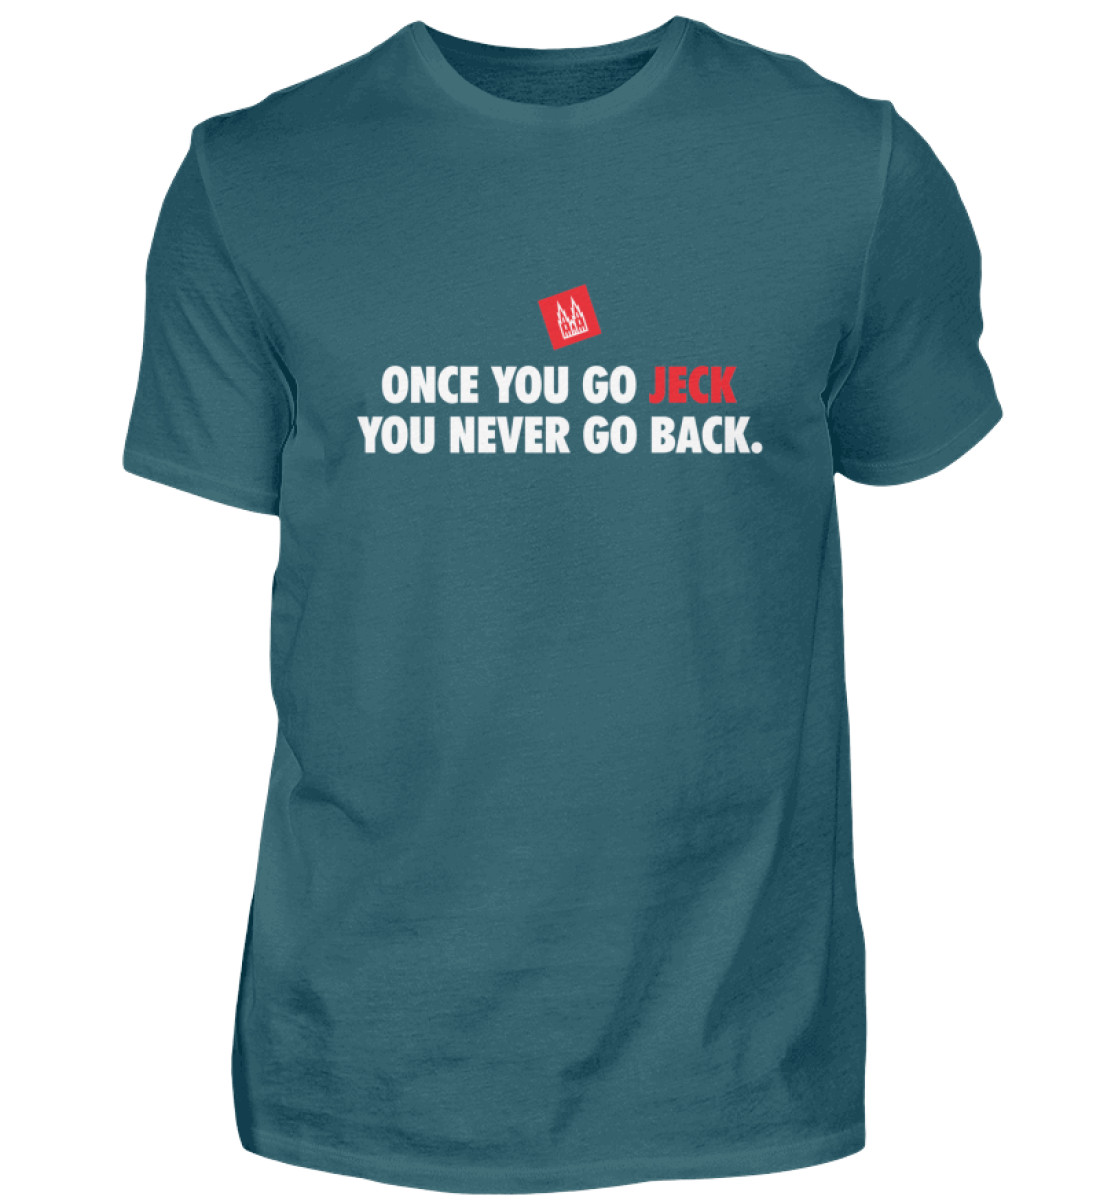 Once you go jeck - T-Shirt Herren - Herren Shirt-1096